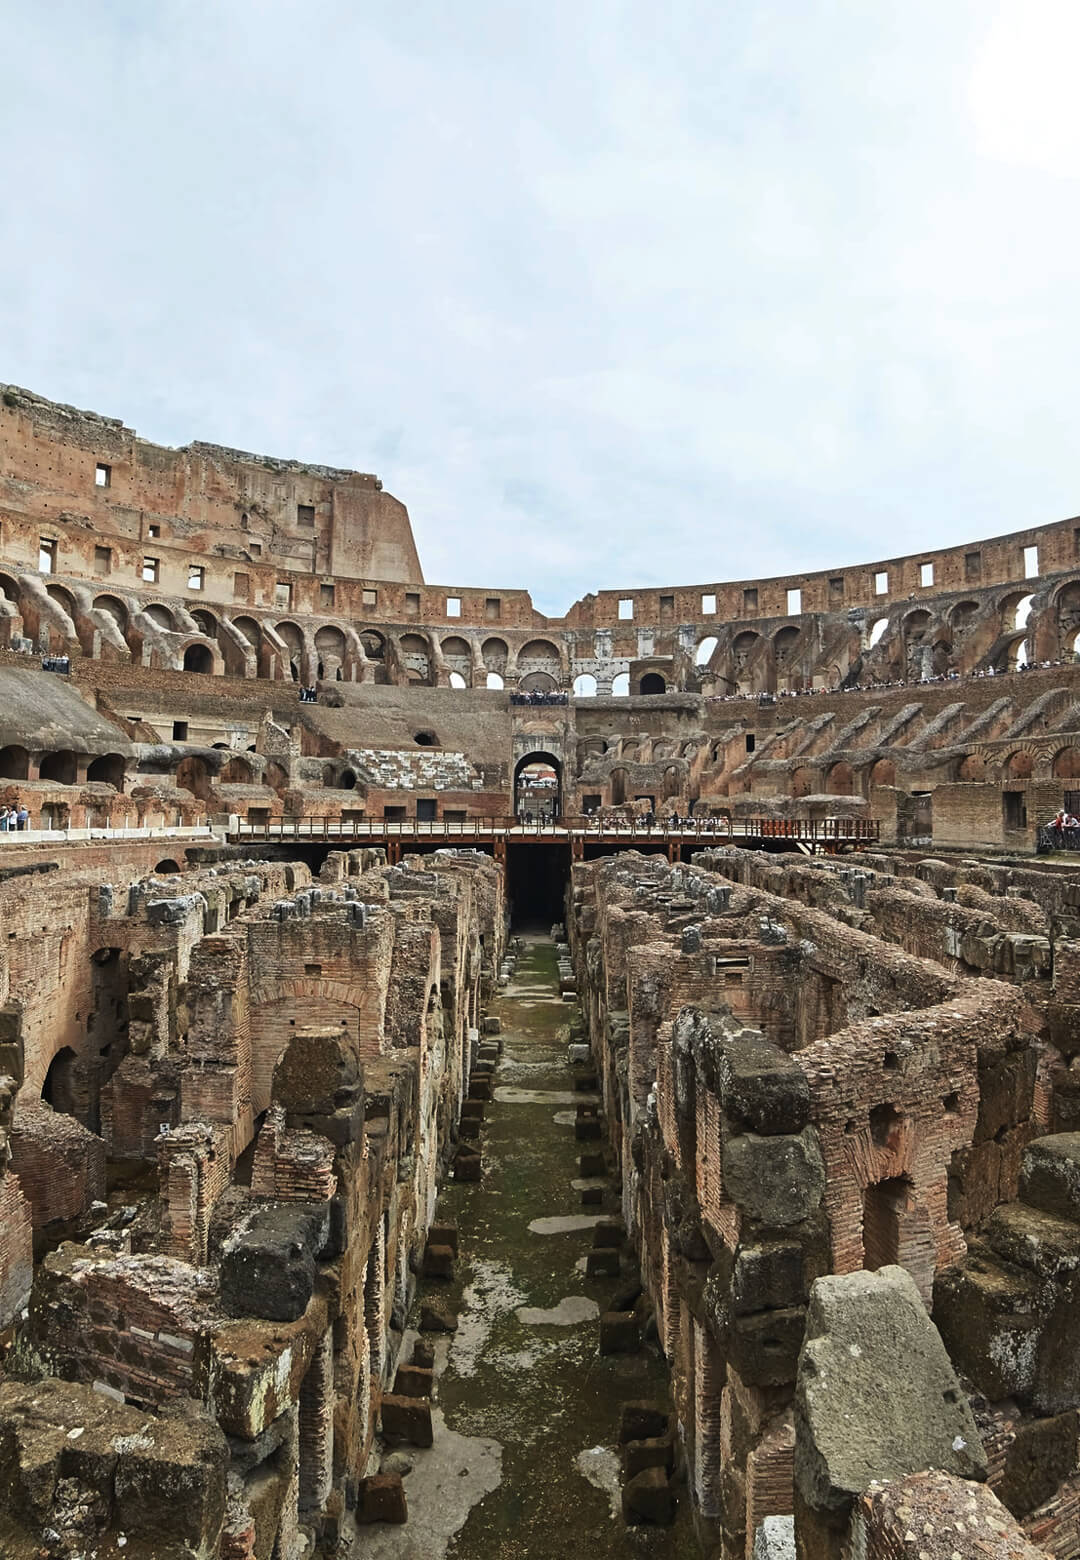 Rome is to rebuild the Colosseum floor along with conserving and restoring the hypogeum   Roman Colosseum Restoration and Conservation   Ministry for Cultural Heritage and Activities and Tourism   STIRworld